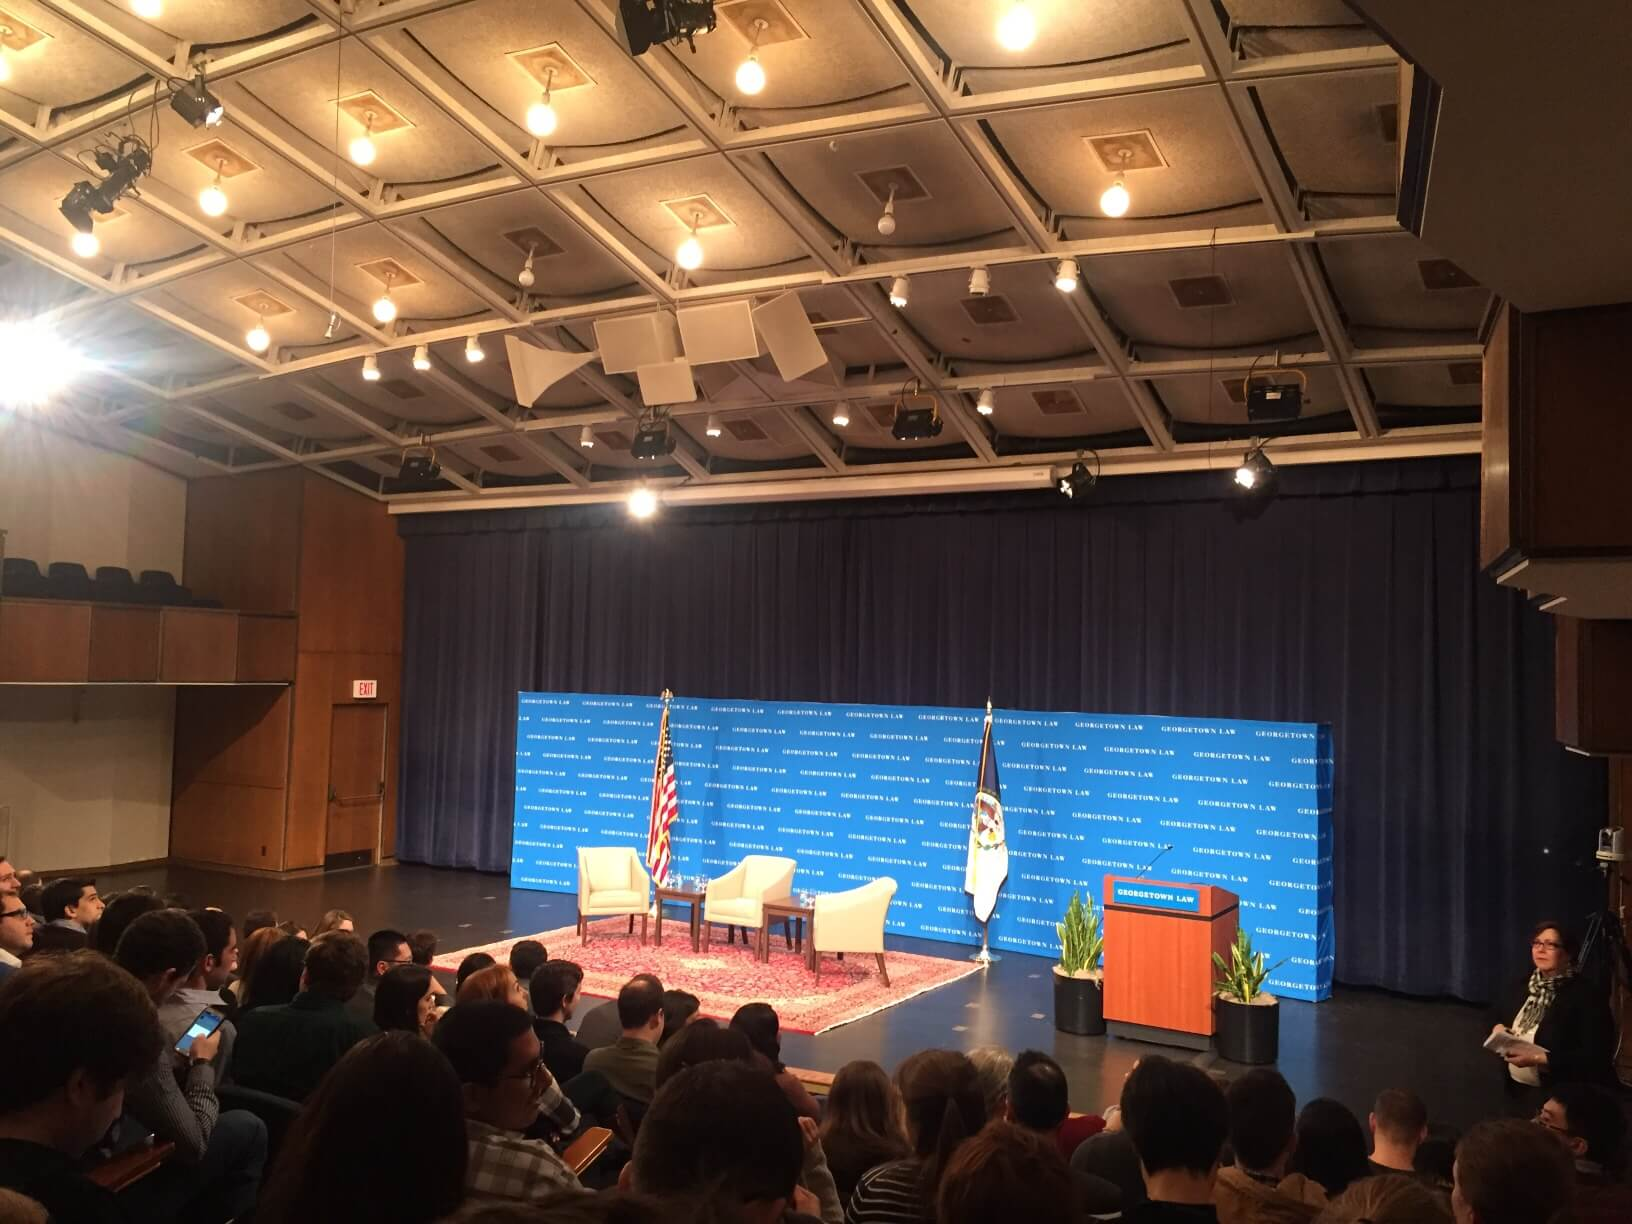 Supreme Court justice speaks at Georgetown Law School